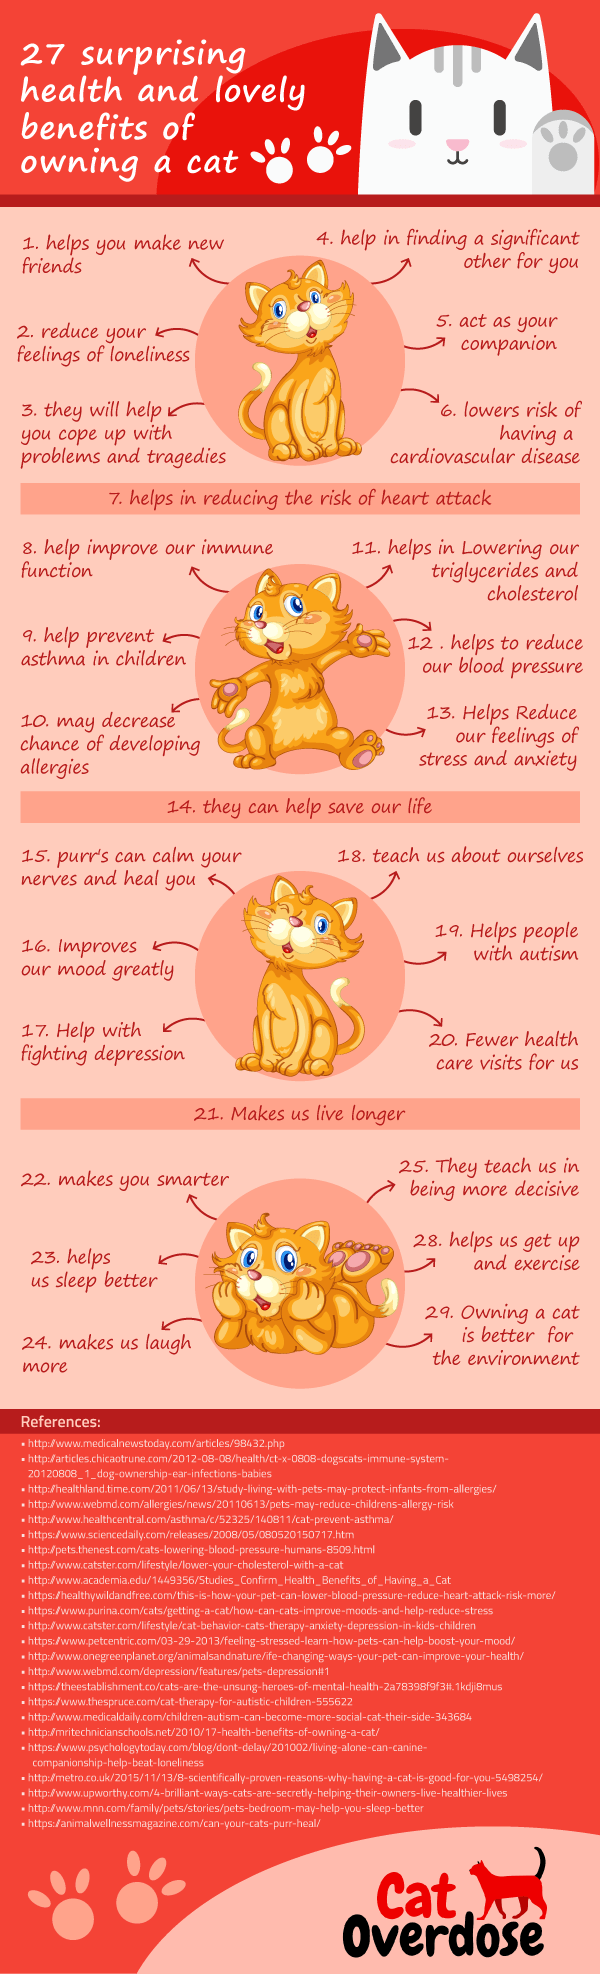 benefits of owning a cat infographic